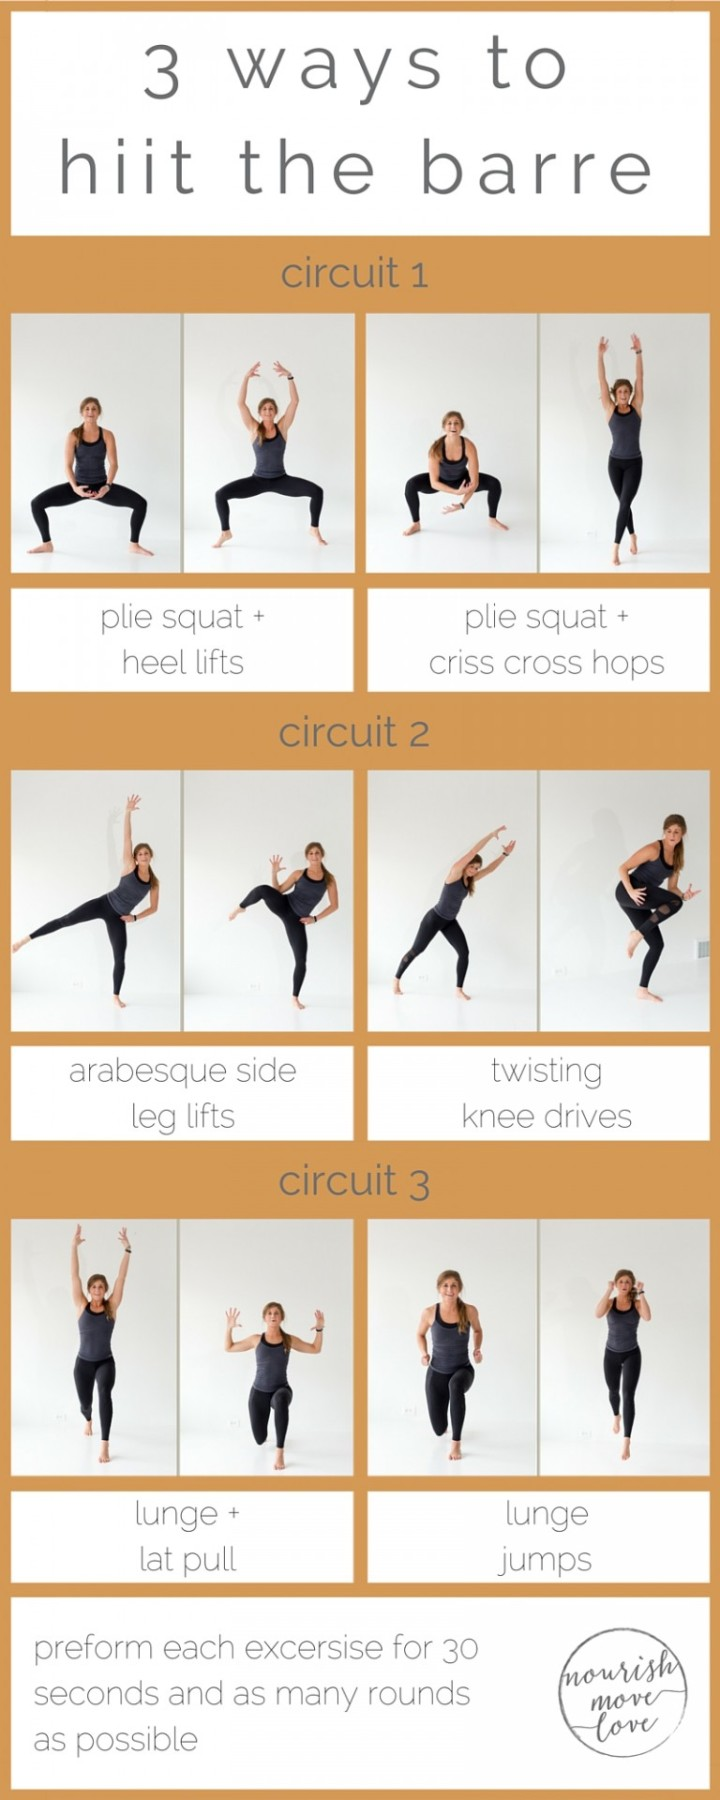 3-ways-to-hiit-the-barre-768x1920